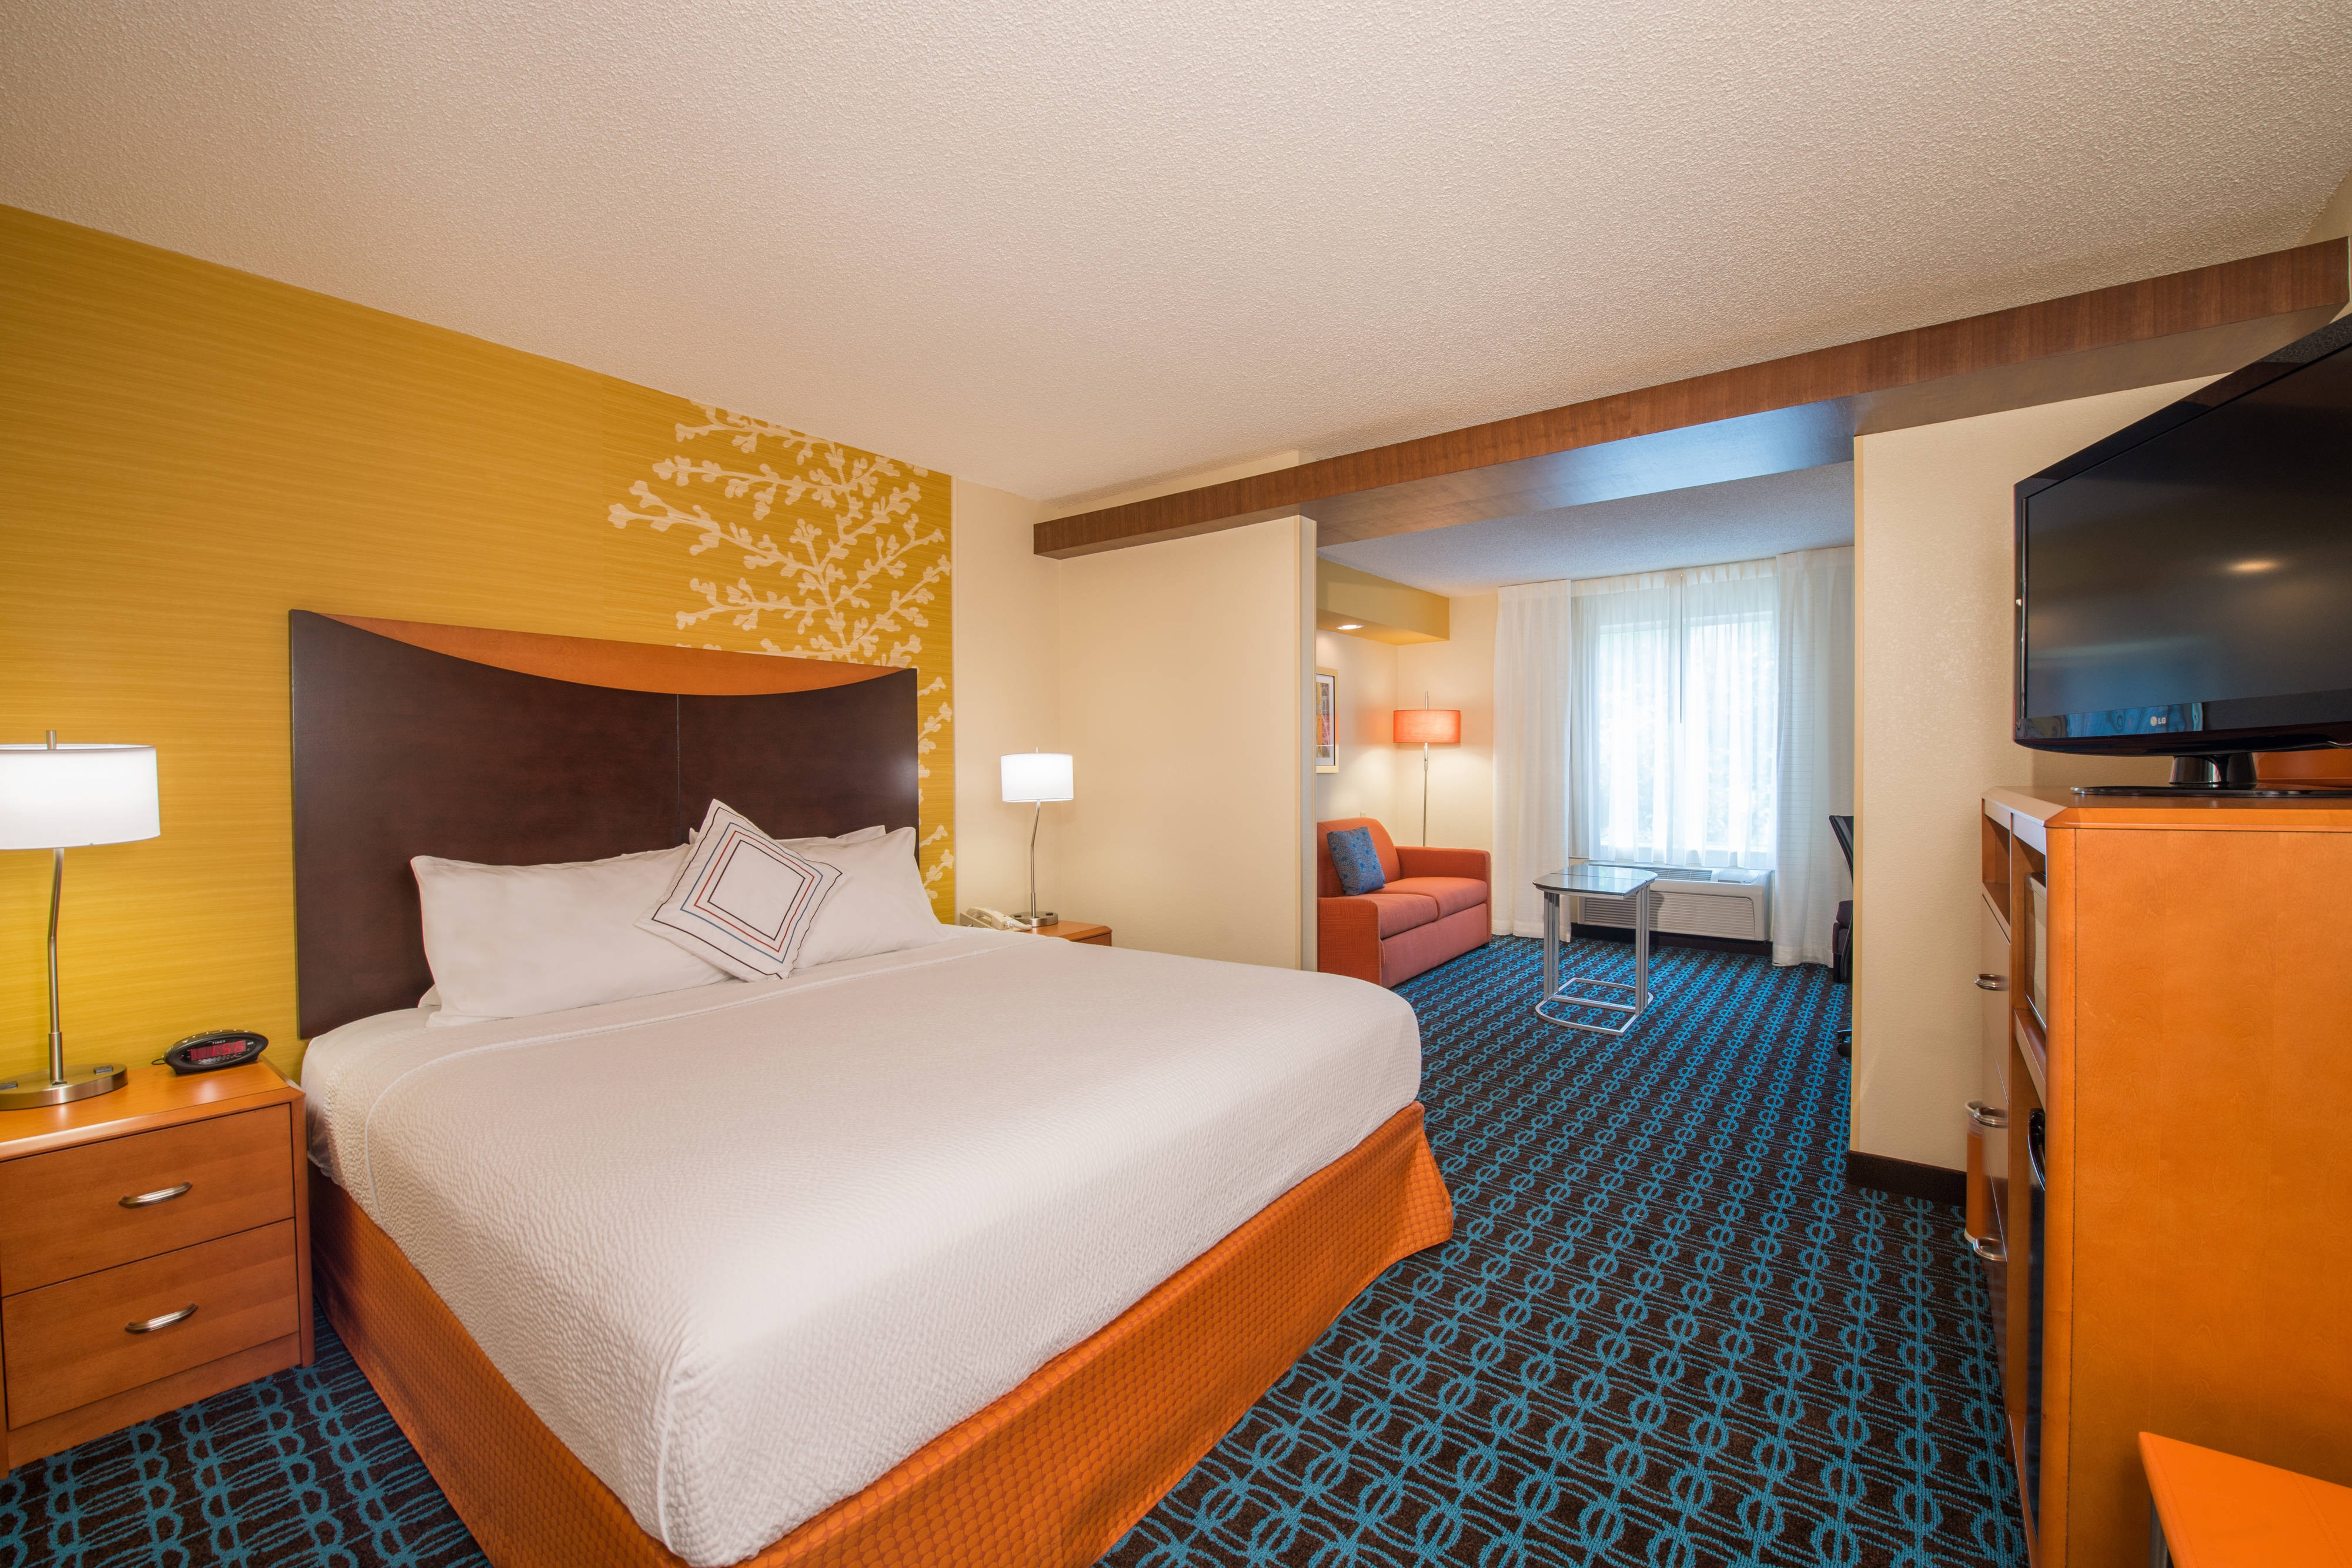 Hotels near Park 100 Indianapolis